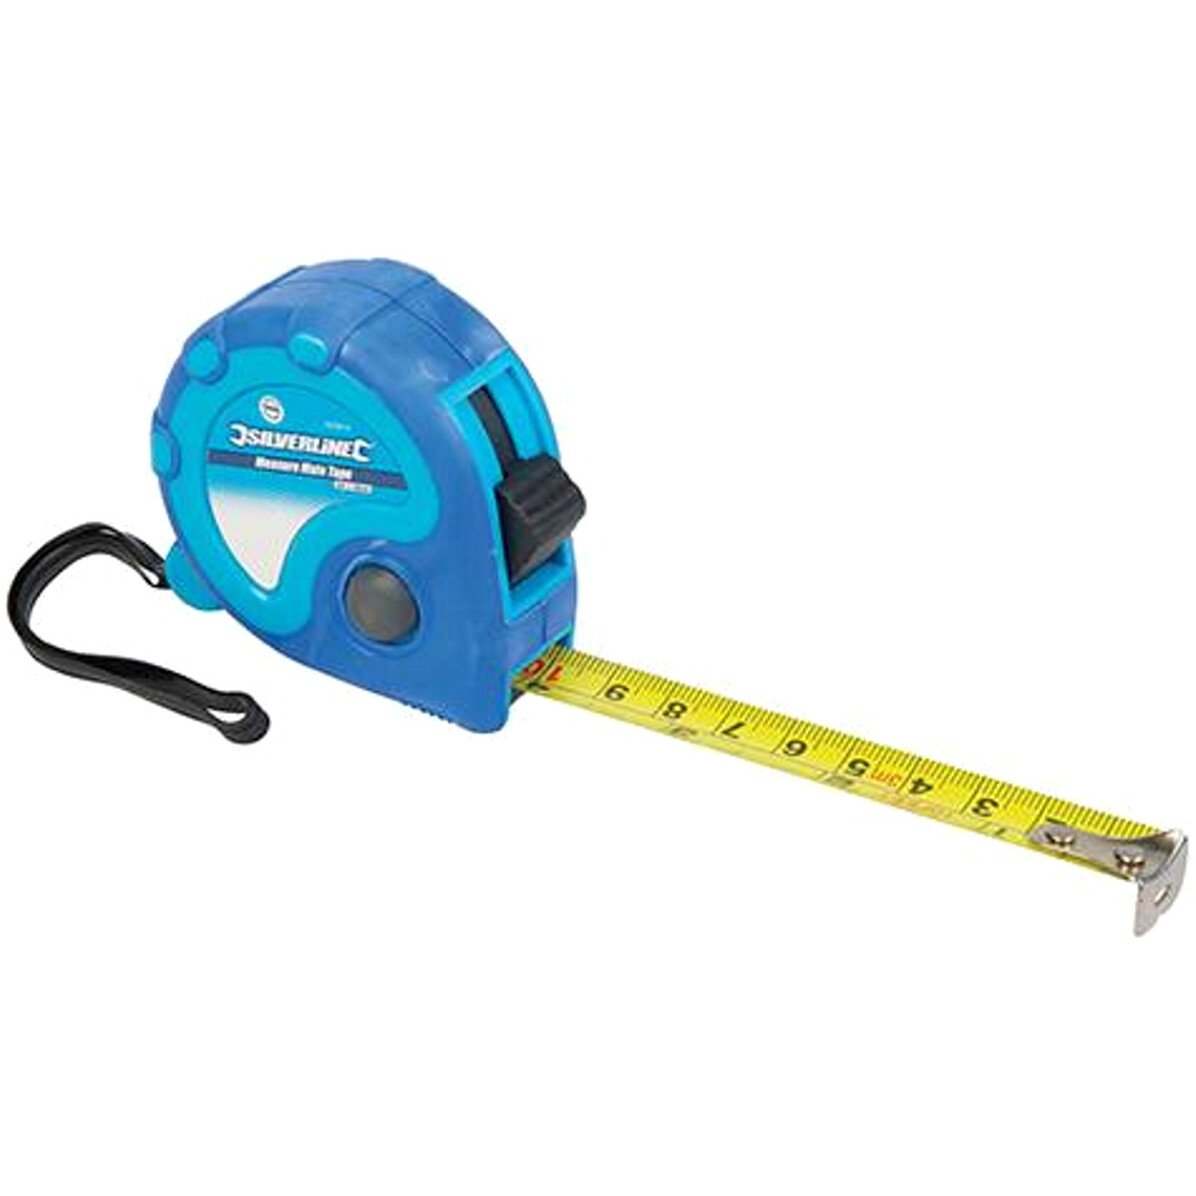 Silverline 633625 Measuring Mate 3 Metre Tape Measure